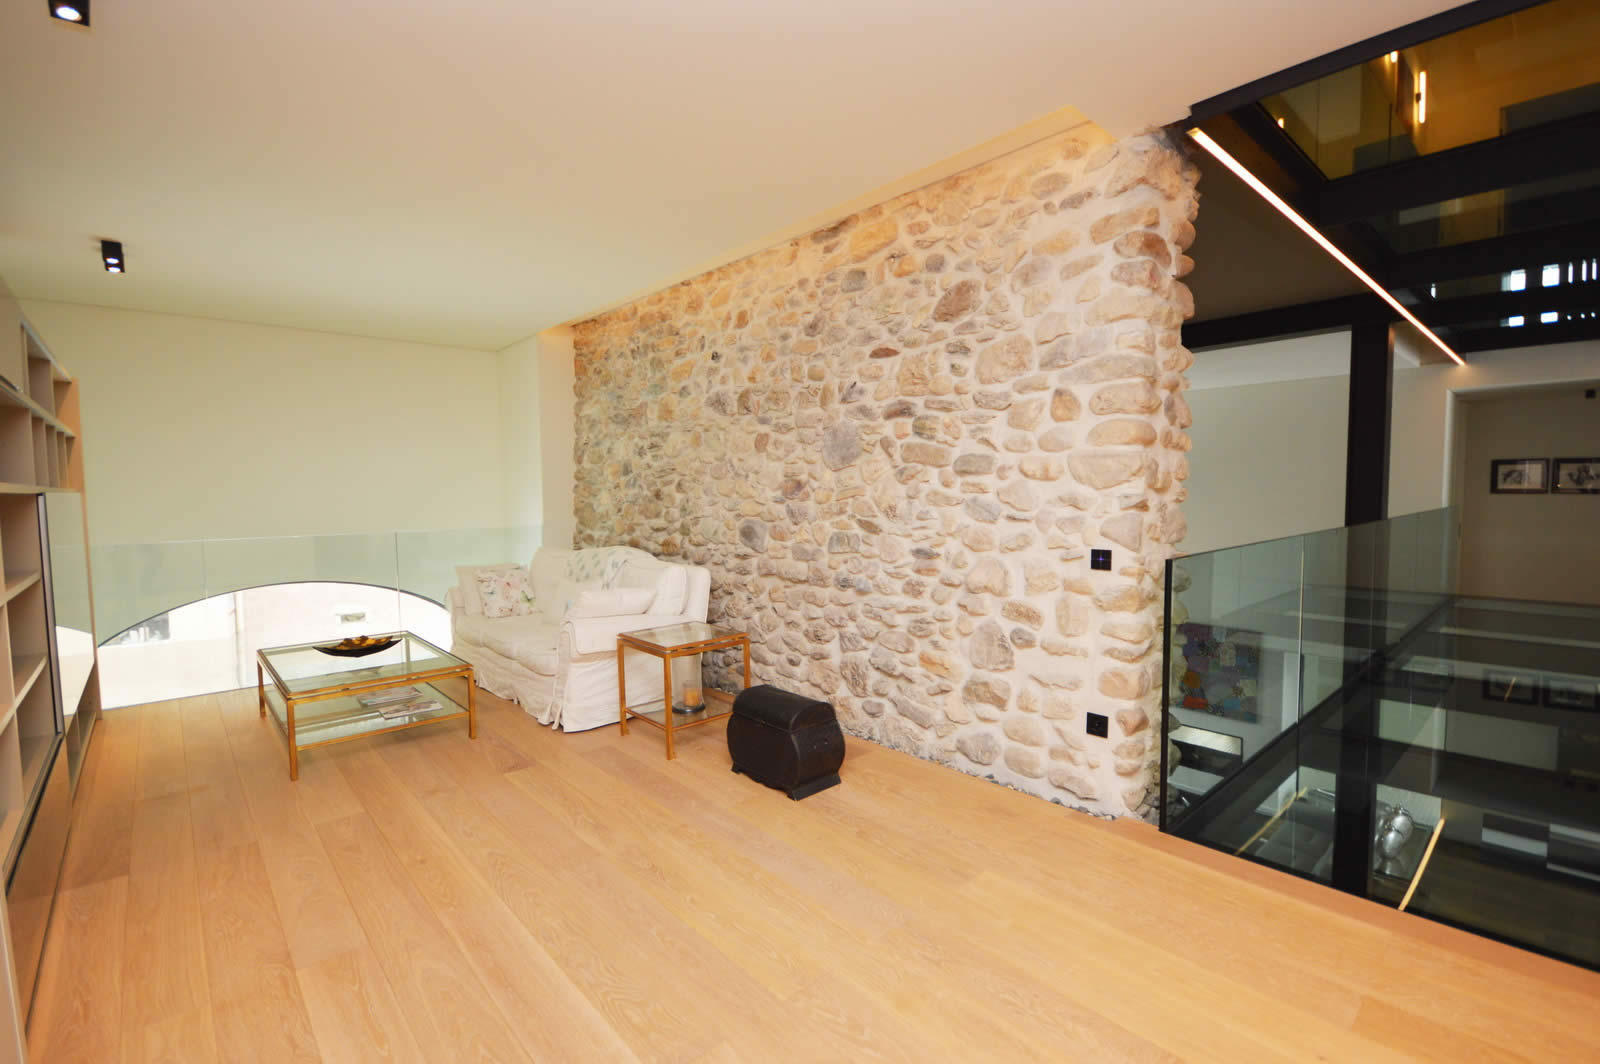 renovated-modern-farmhouse-10-rooms-wooden-beams-stone-walls-for-sale-grandson